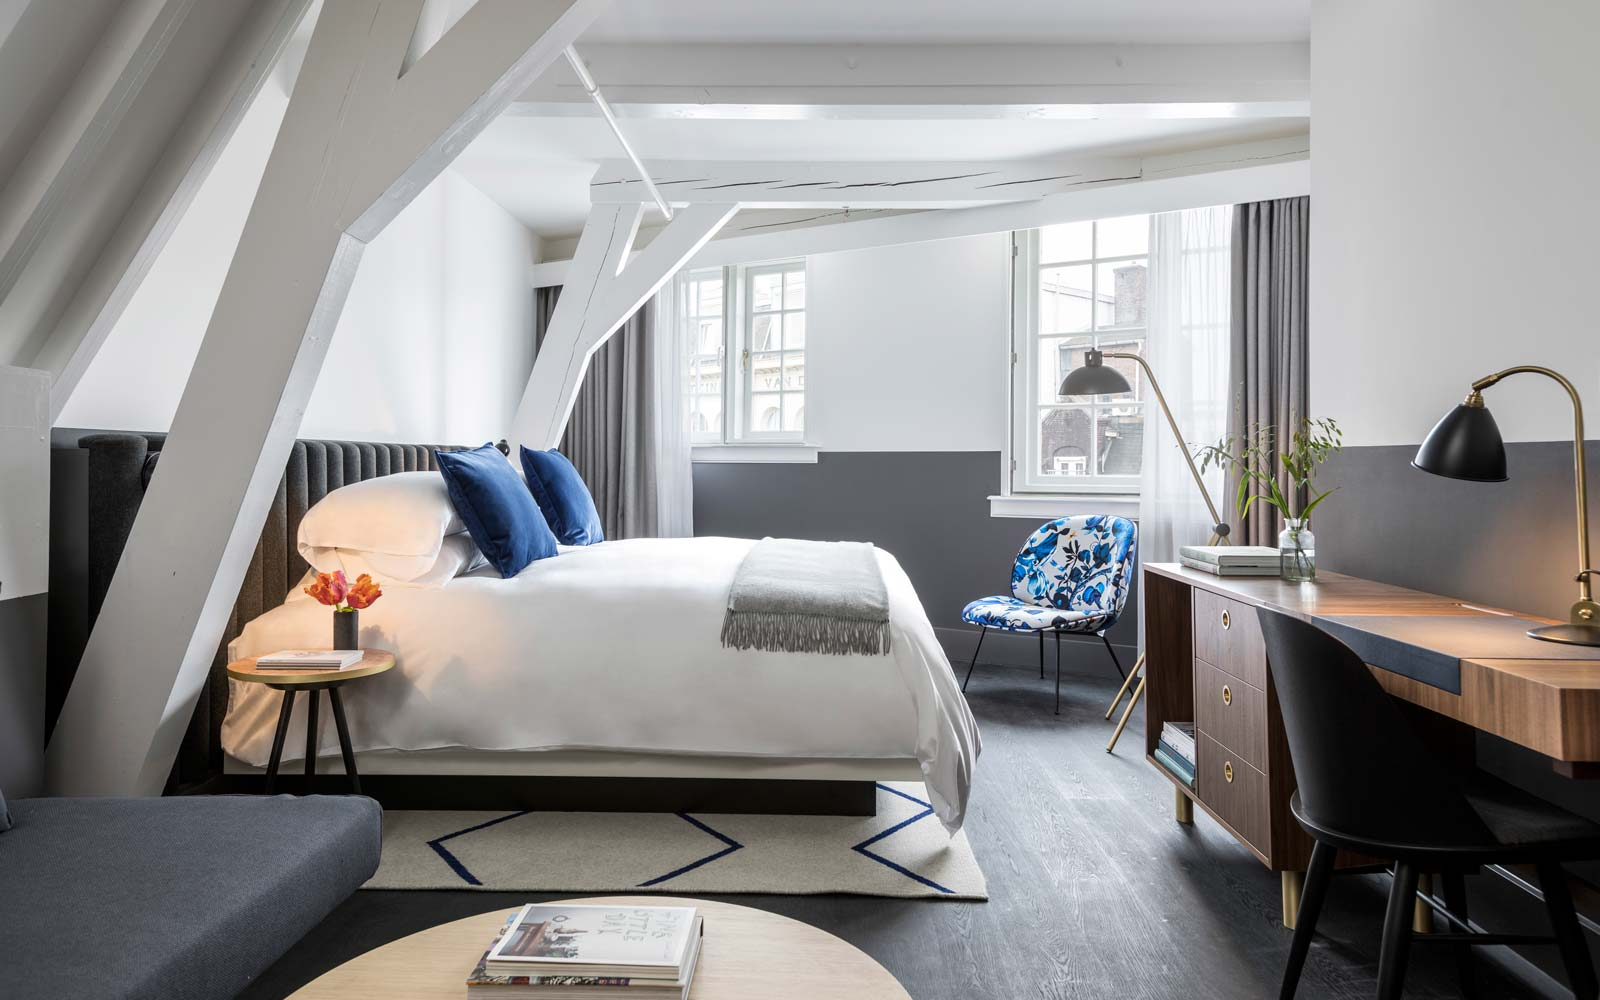 An inside look at the new Kimpton De Witt Hotel in Amsterdam